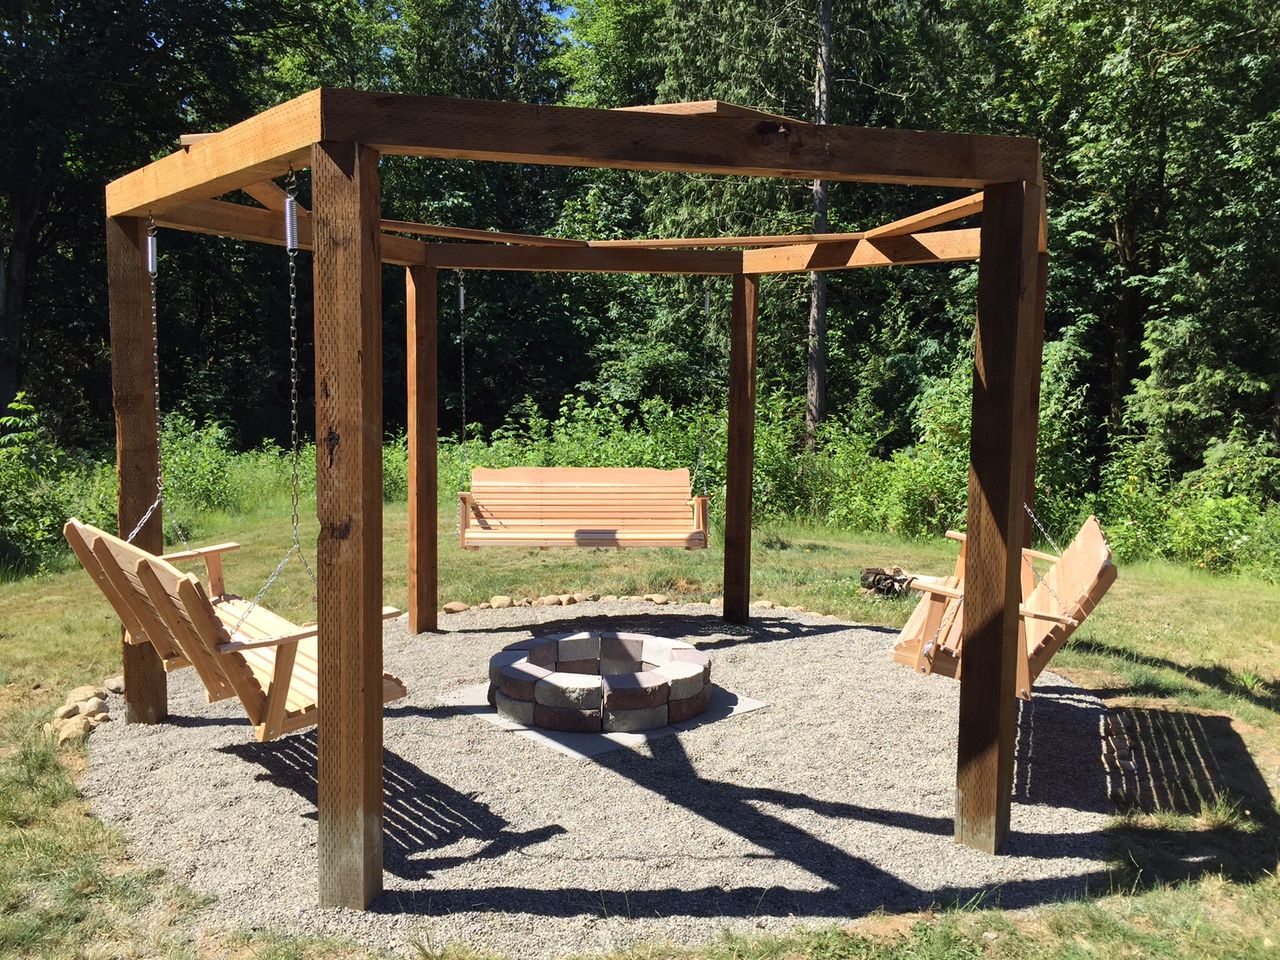 How To Build Your Own Wooden Gazebo 10 Amazing Projects